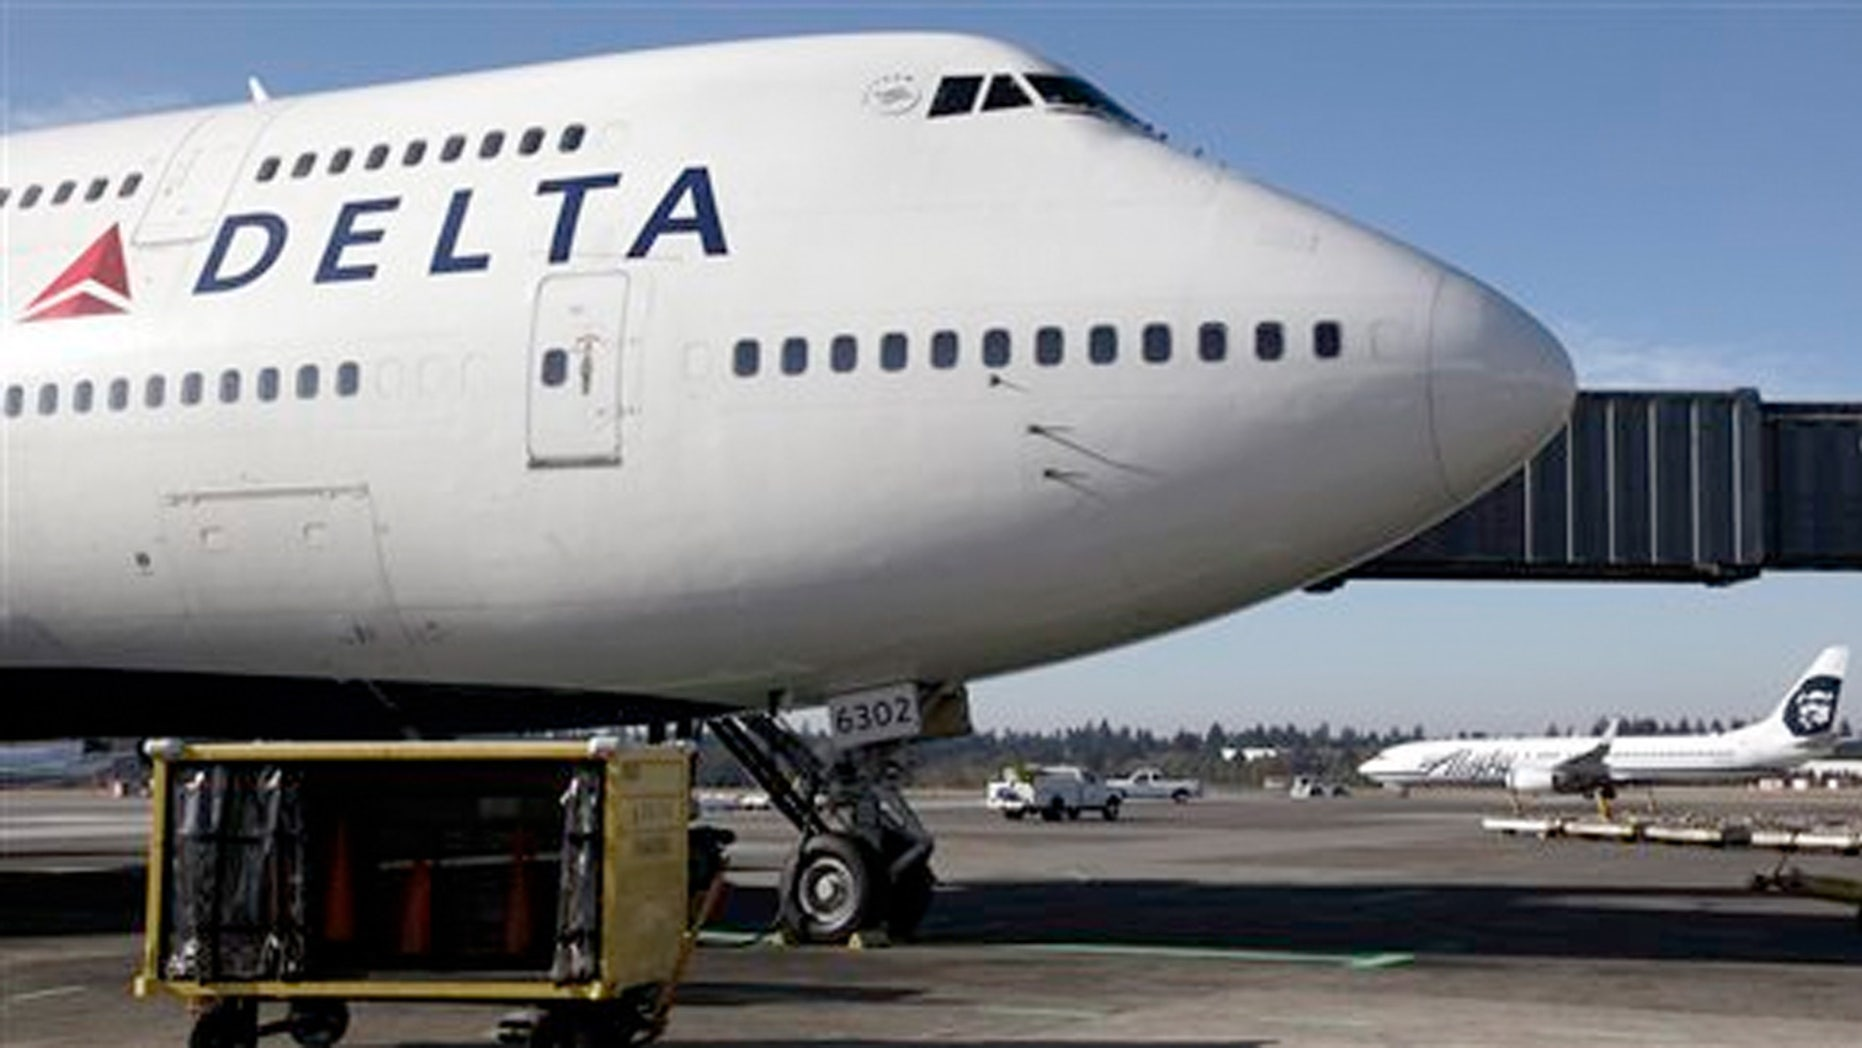 A mother of three is praising Delta Air Lines for upgrading her so she could pump breast milk in privacy.